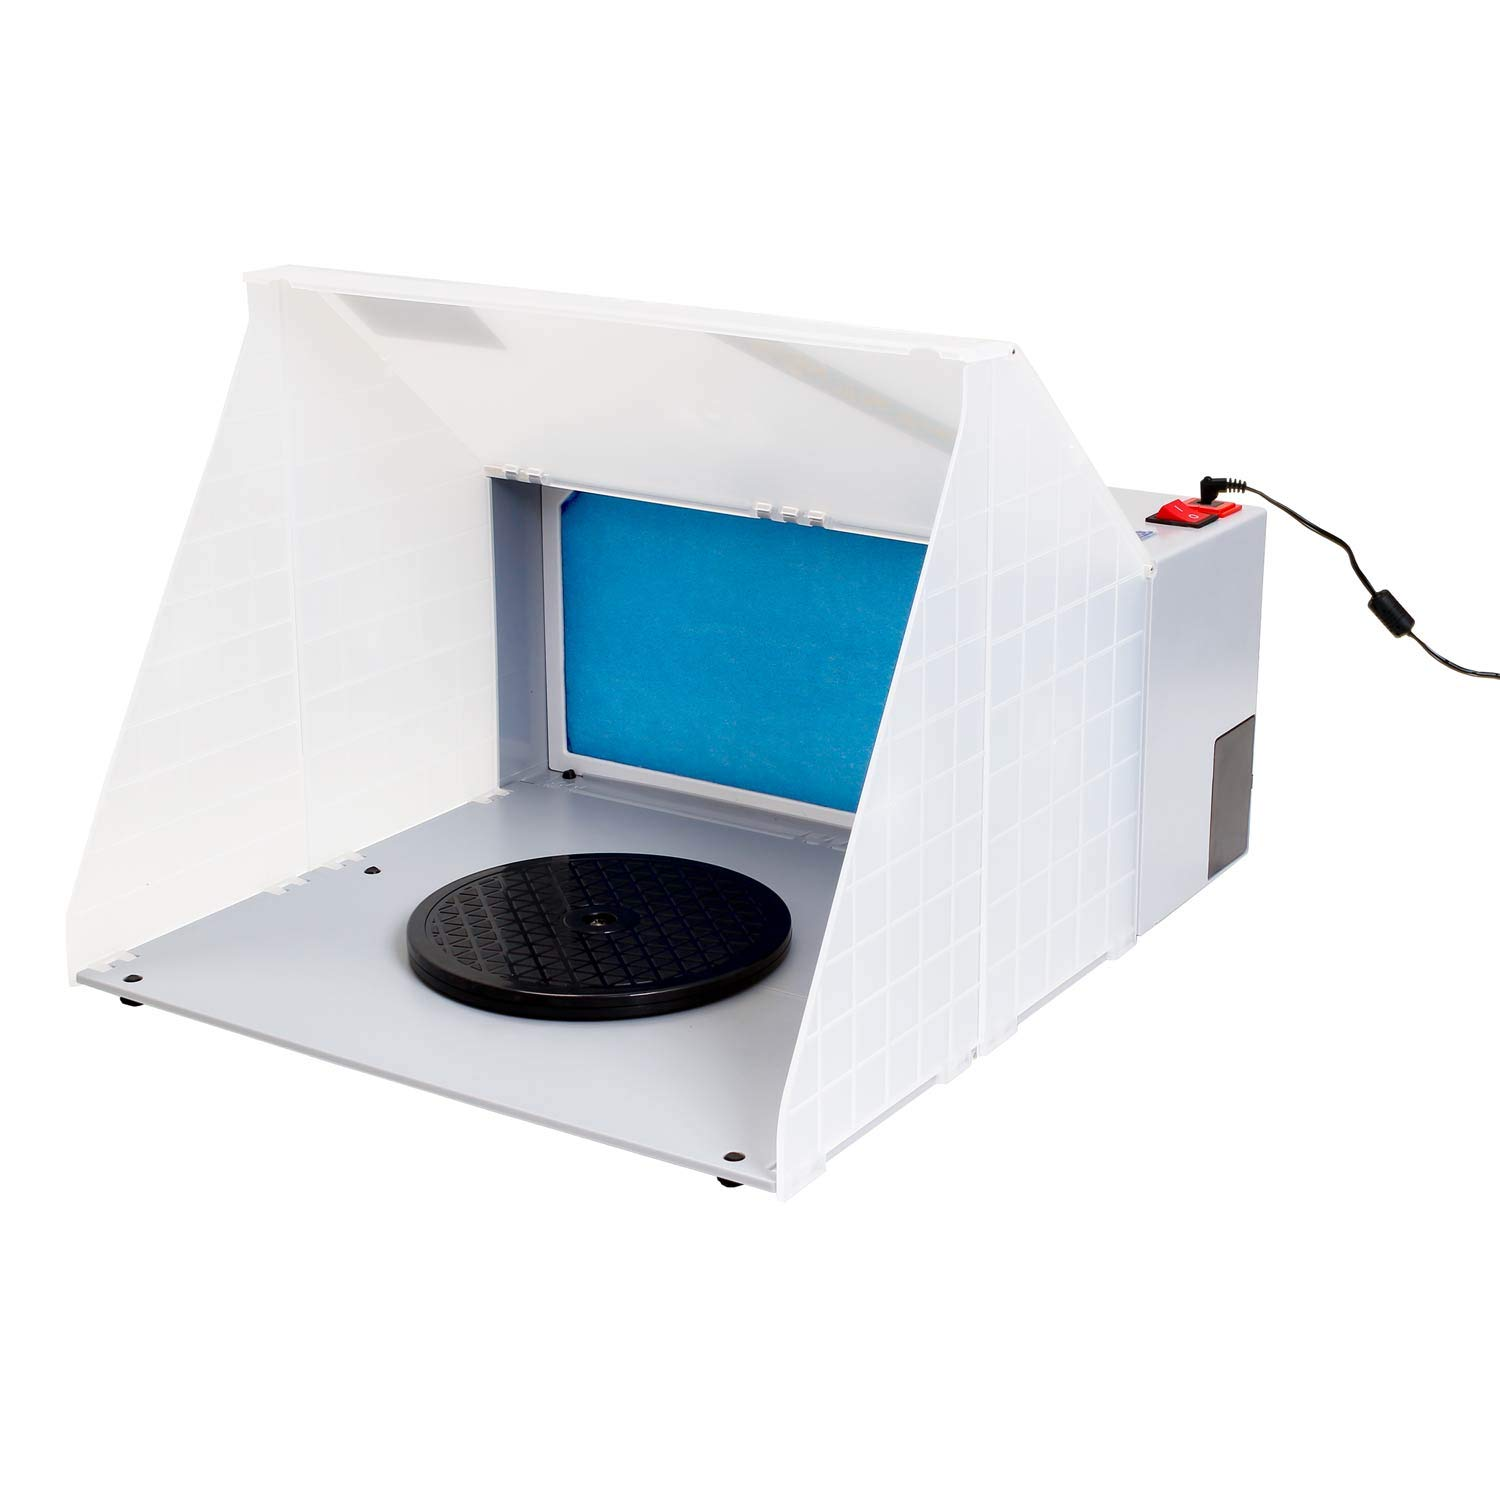 Master Airbrush Brand Portable Hobby Airbrush Spray Booth for Painting All Art, Cake, Craft, Hobby, Nails, T-Shirts & More. by Master Airbrush